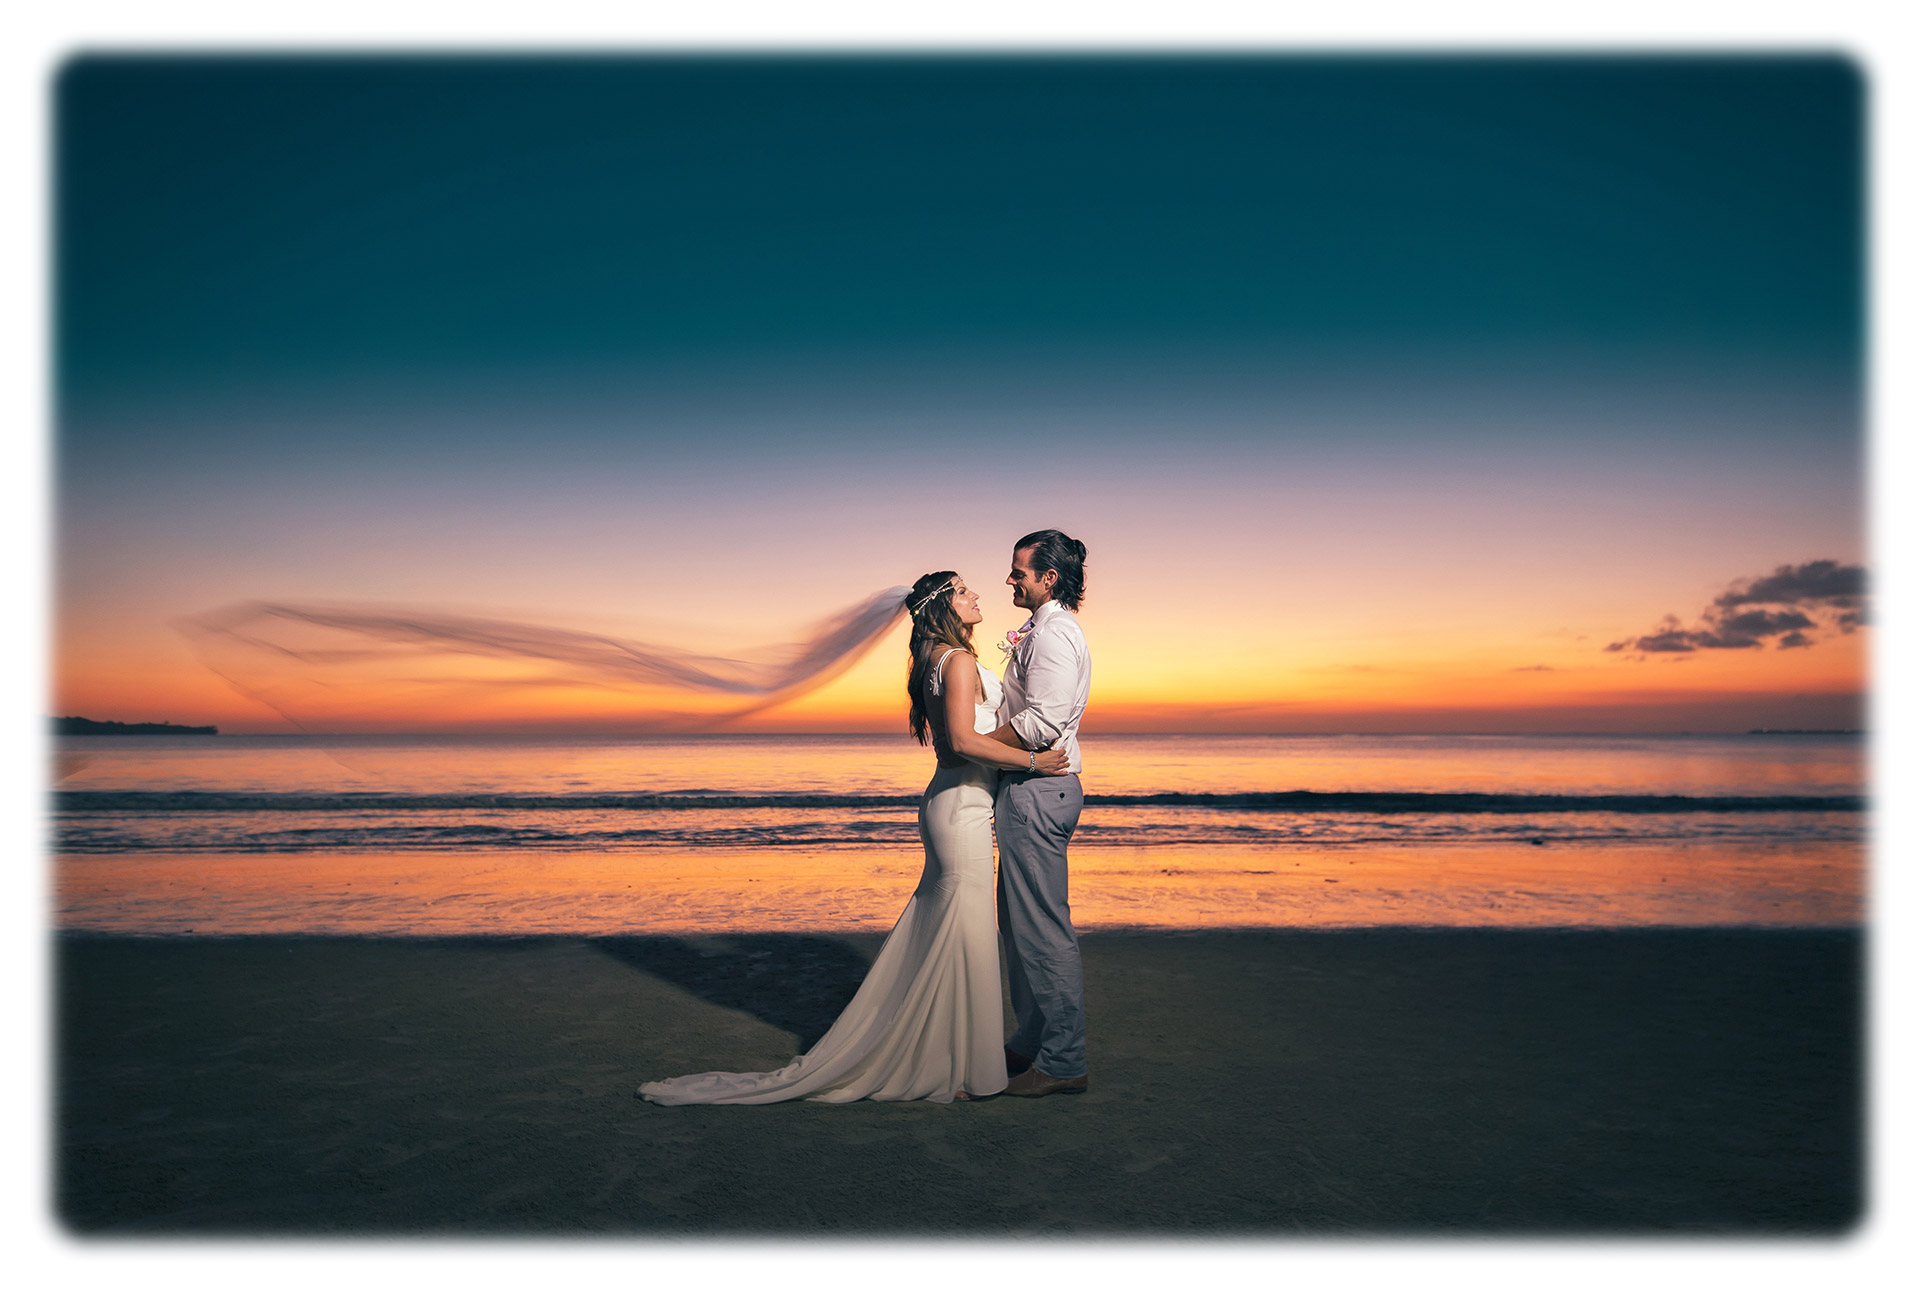 Great Wedding Photographer Bali